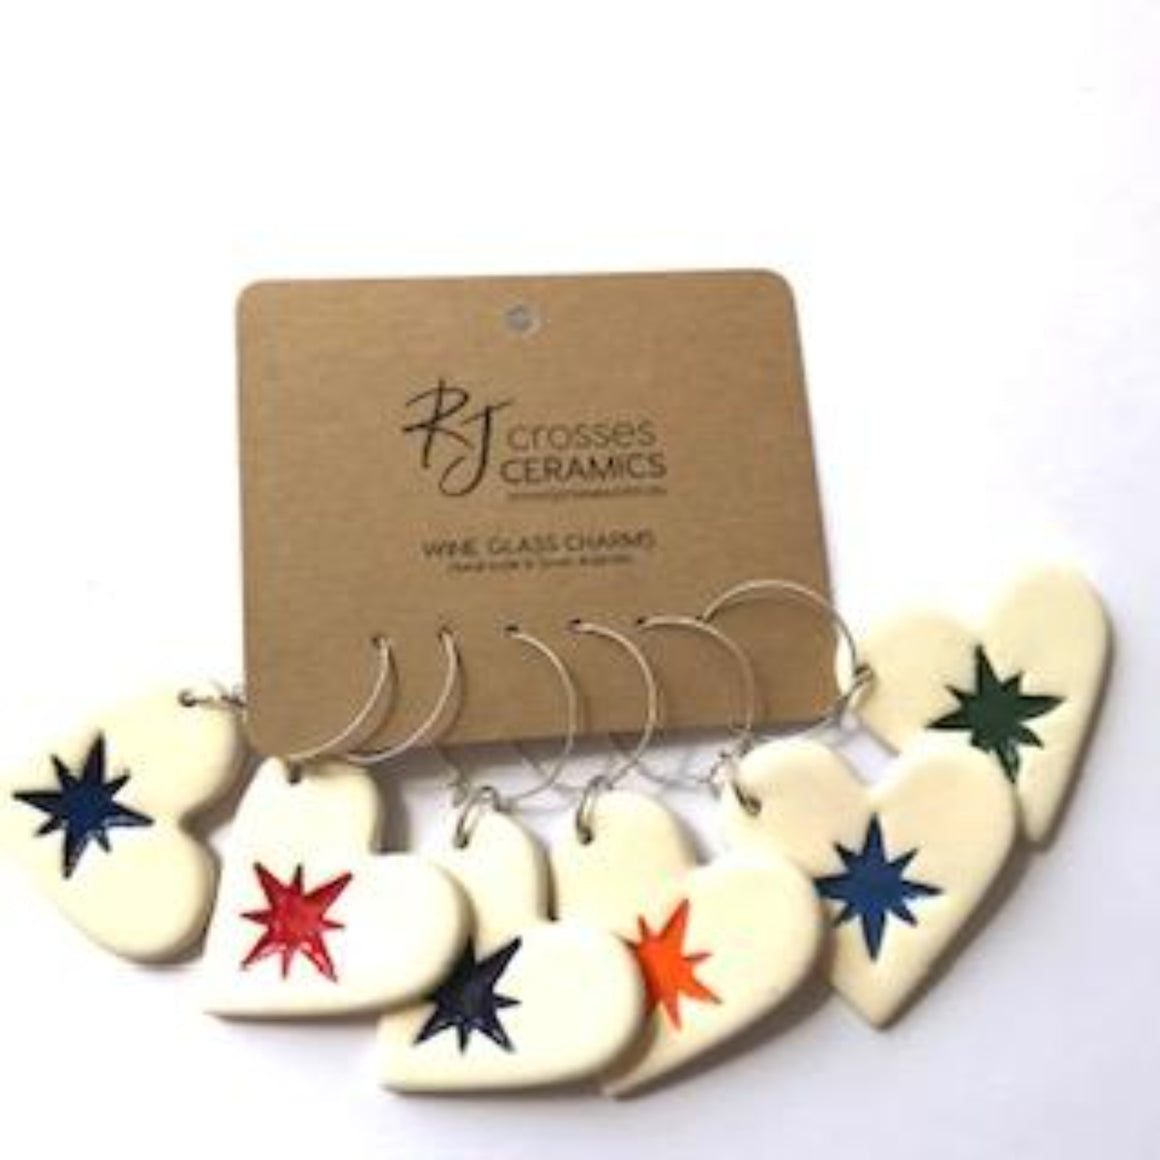 RJ Crosses - Ceramic Wine Glass Charms - Various